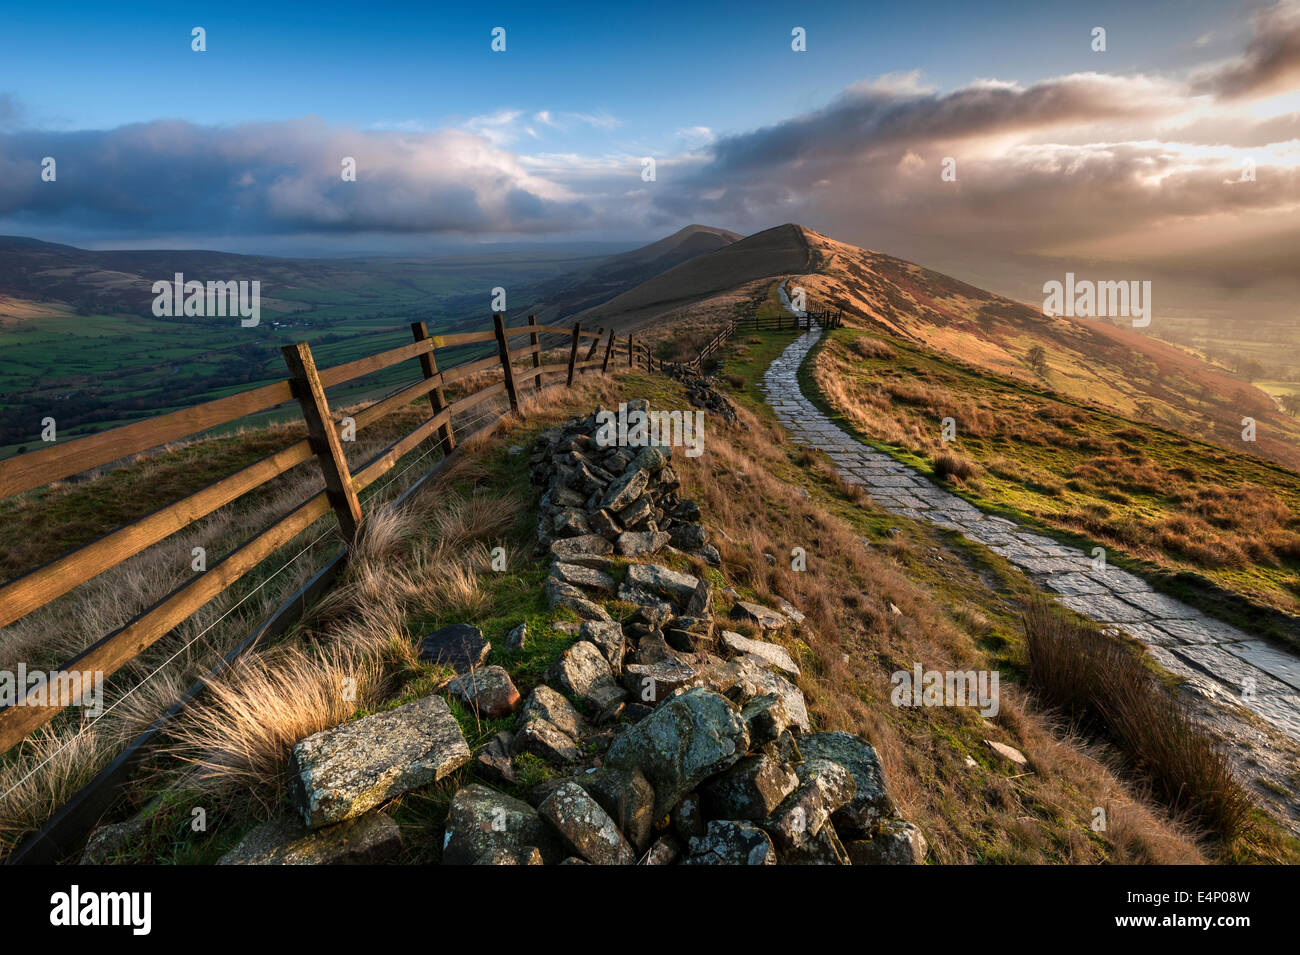 Sunrise Over The Great Ridge, Lose Hill & Hope Valley, Peak District National Park, Derbyshire, England, UK - Stock Image